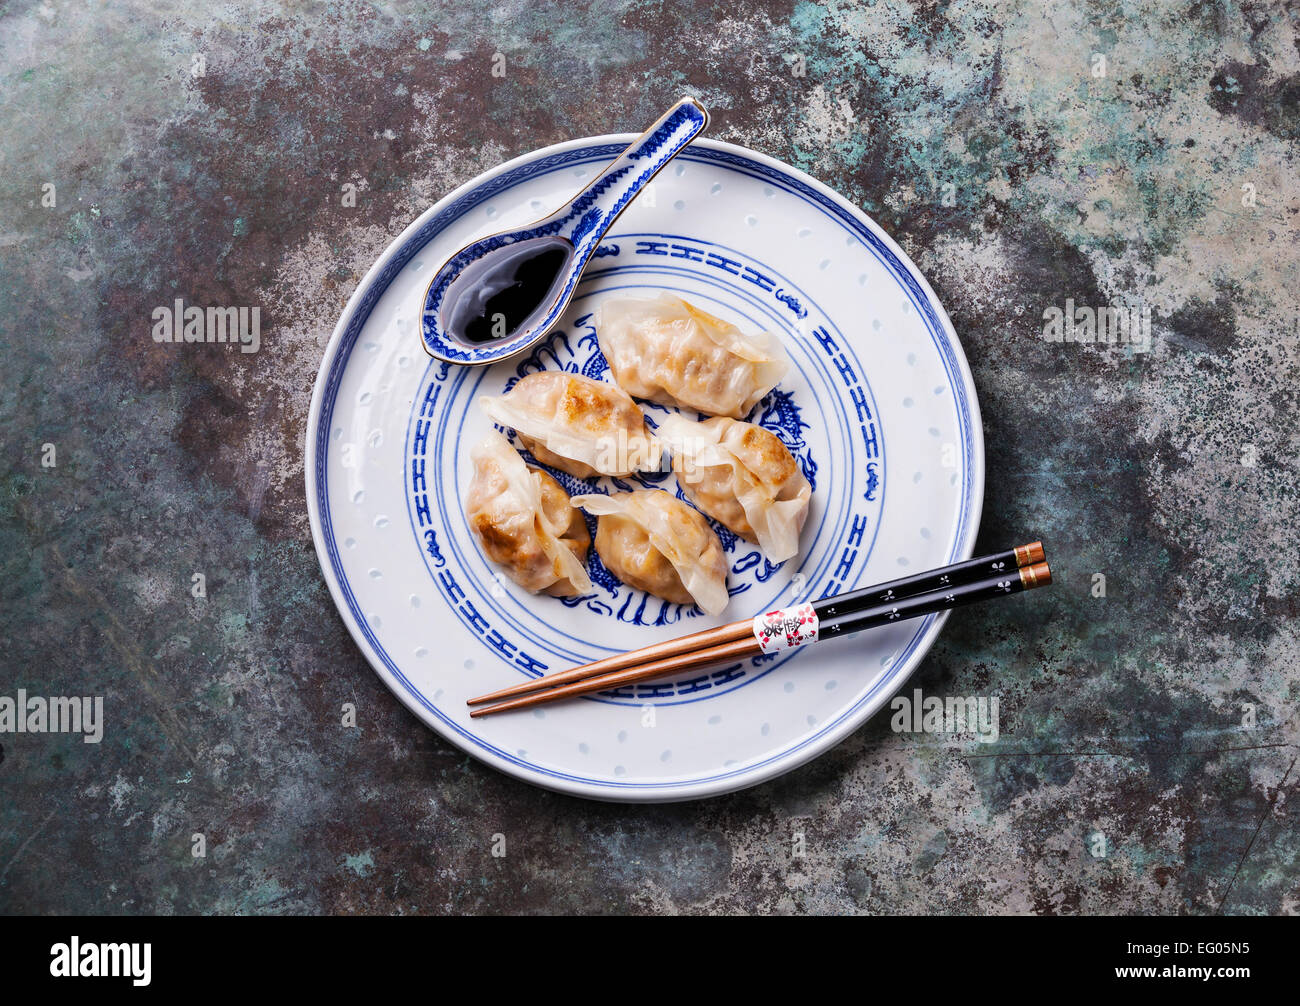 Special Kimchi Fried Dumplings and sauce - Stock Image